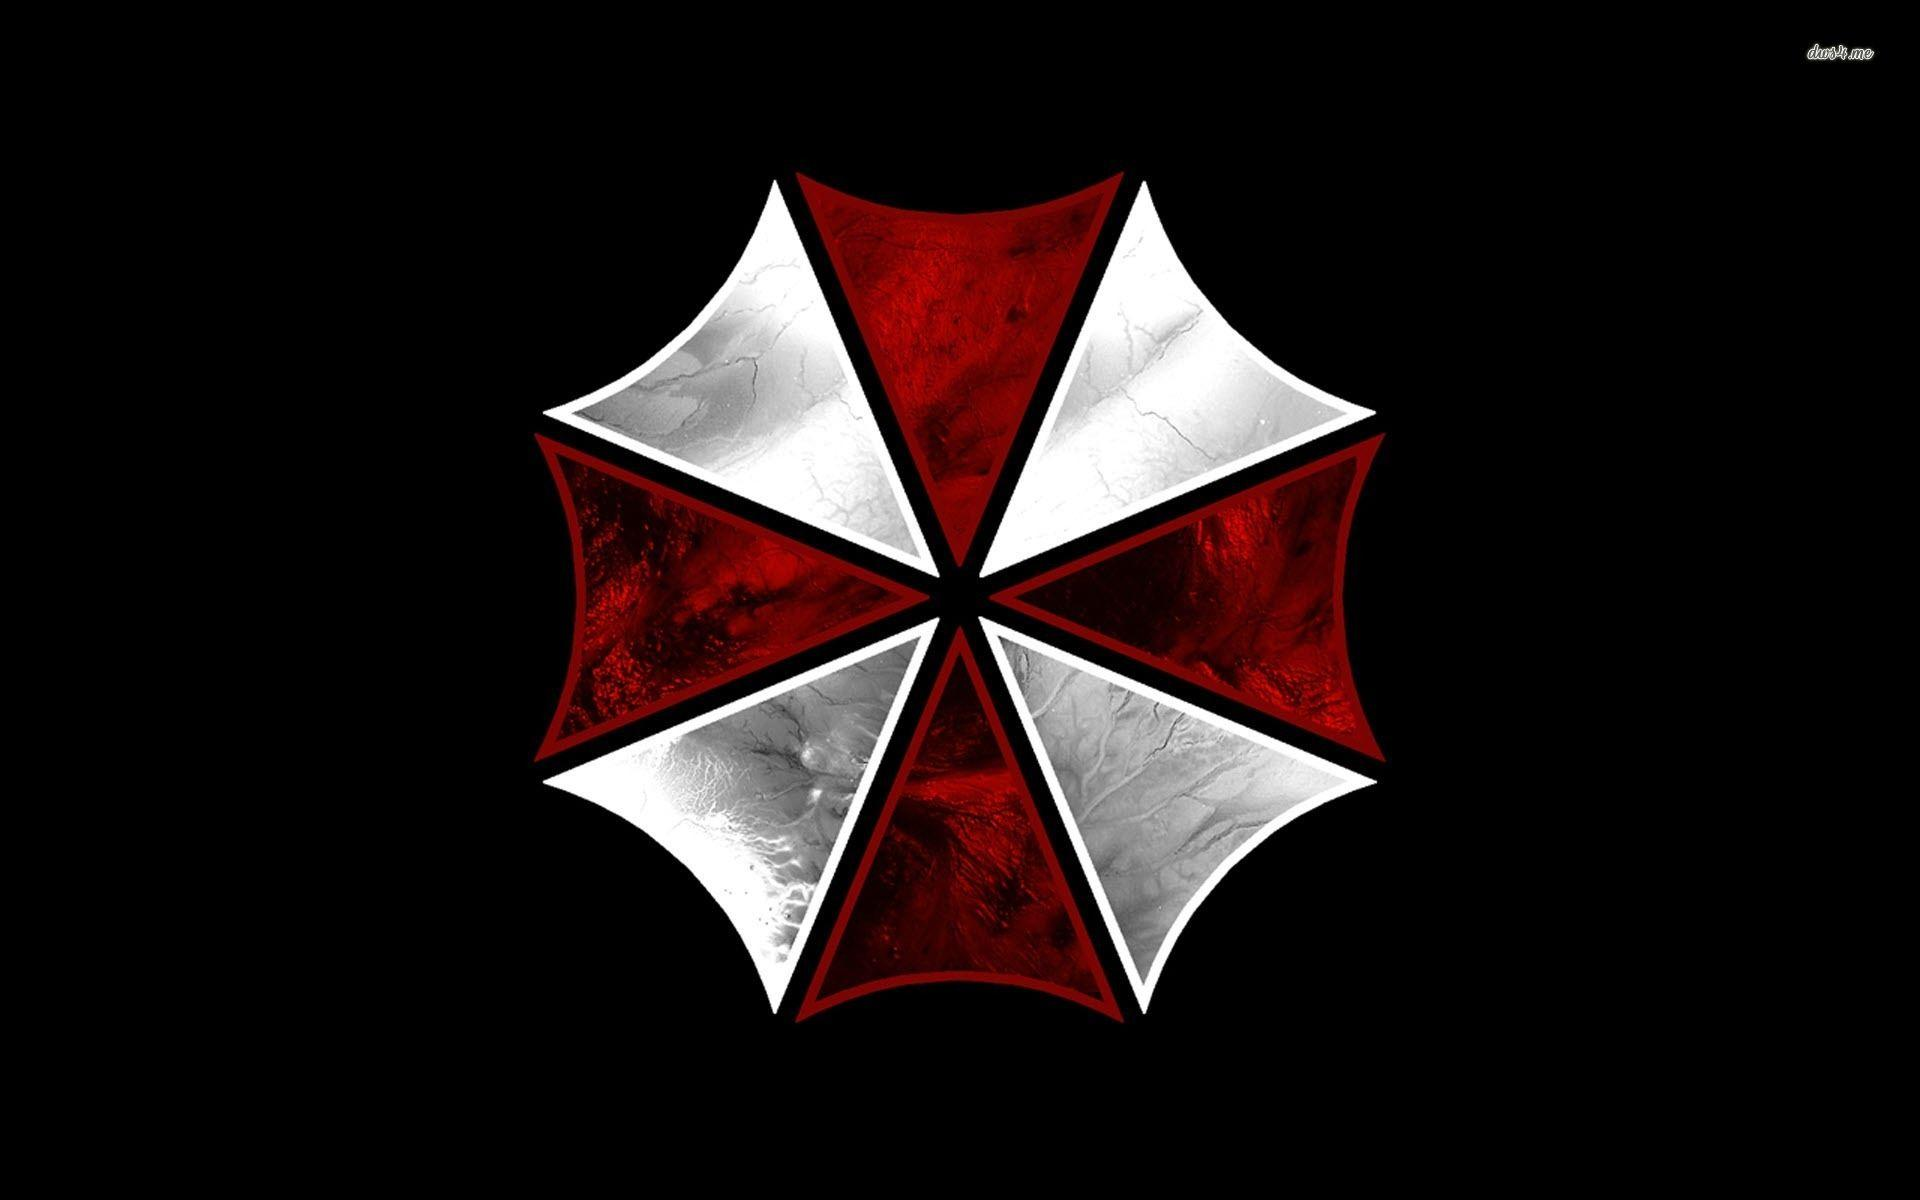 Umbrella Corporation Wallpapers - Full HD wallpaper search